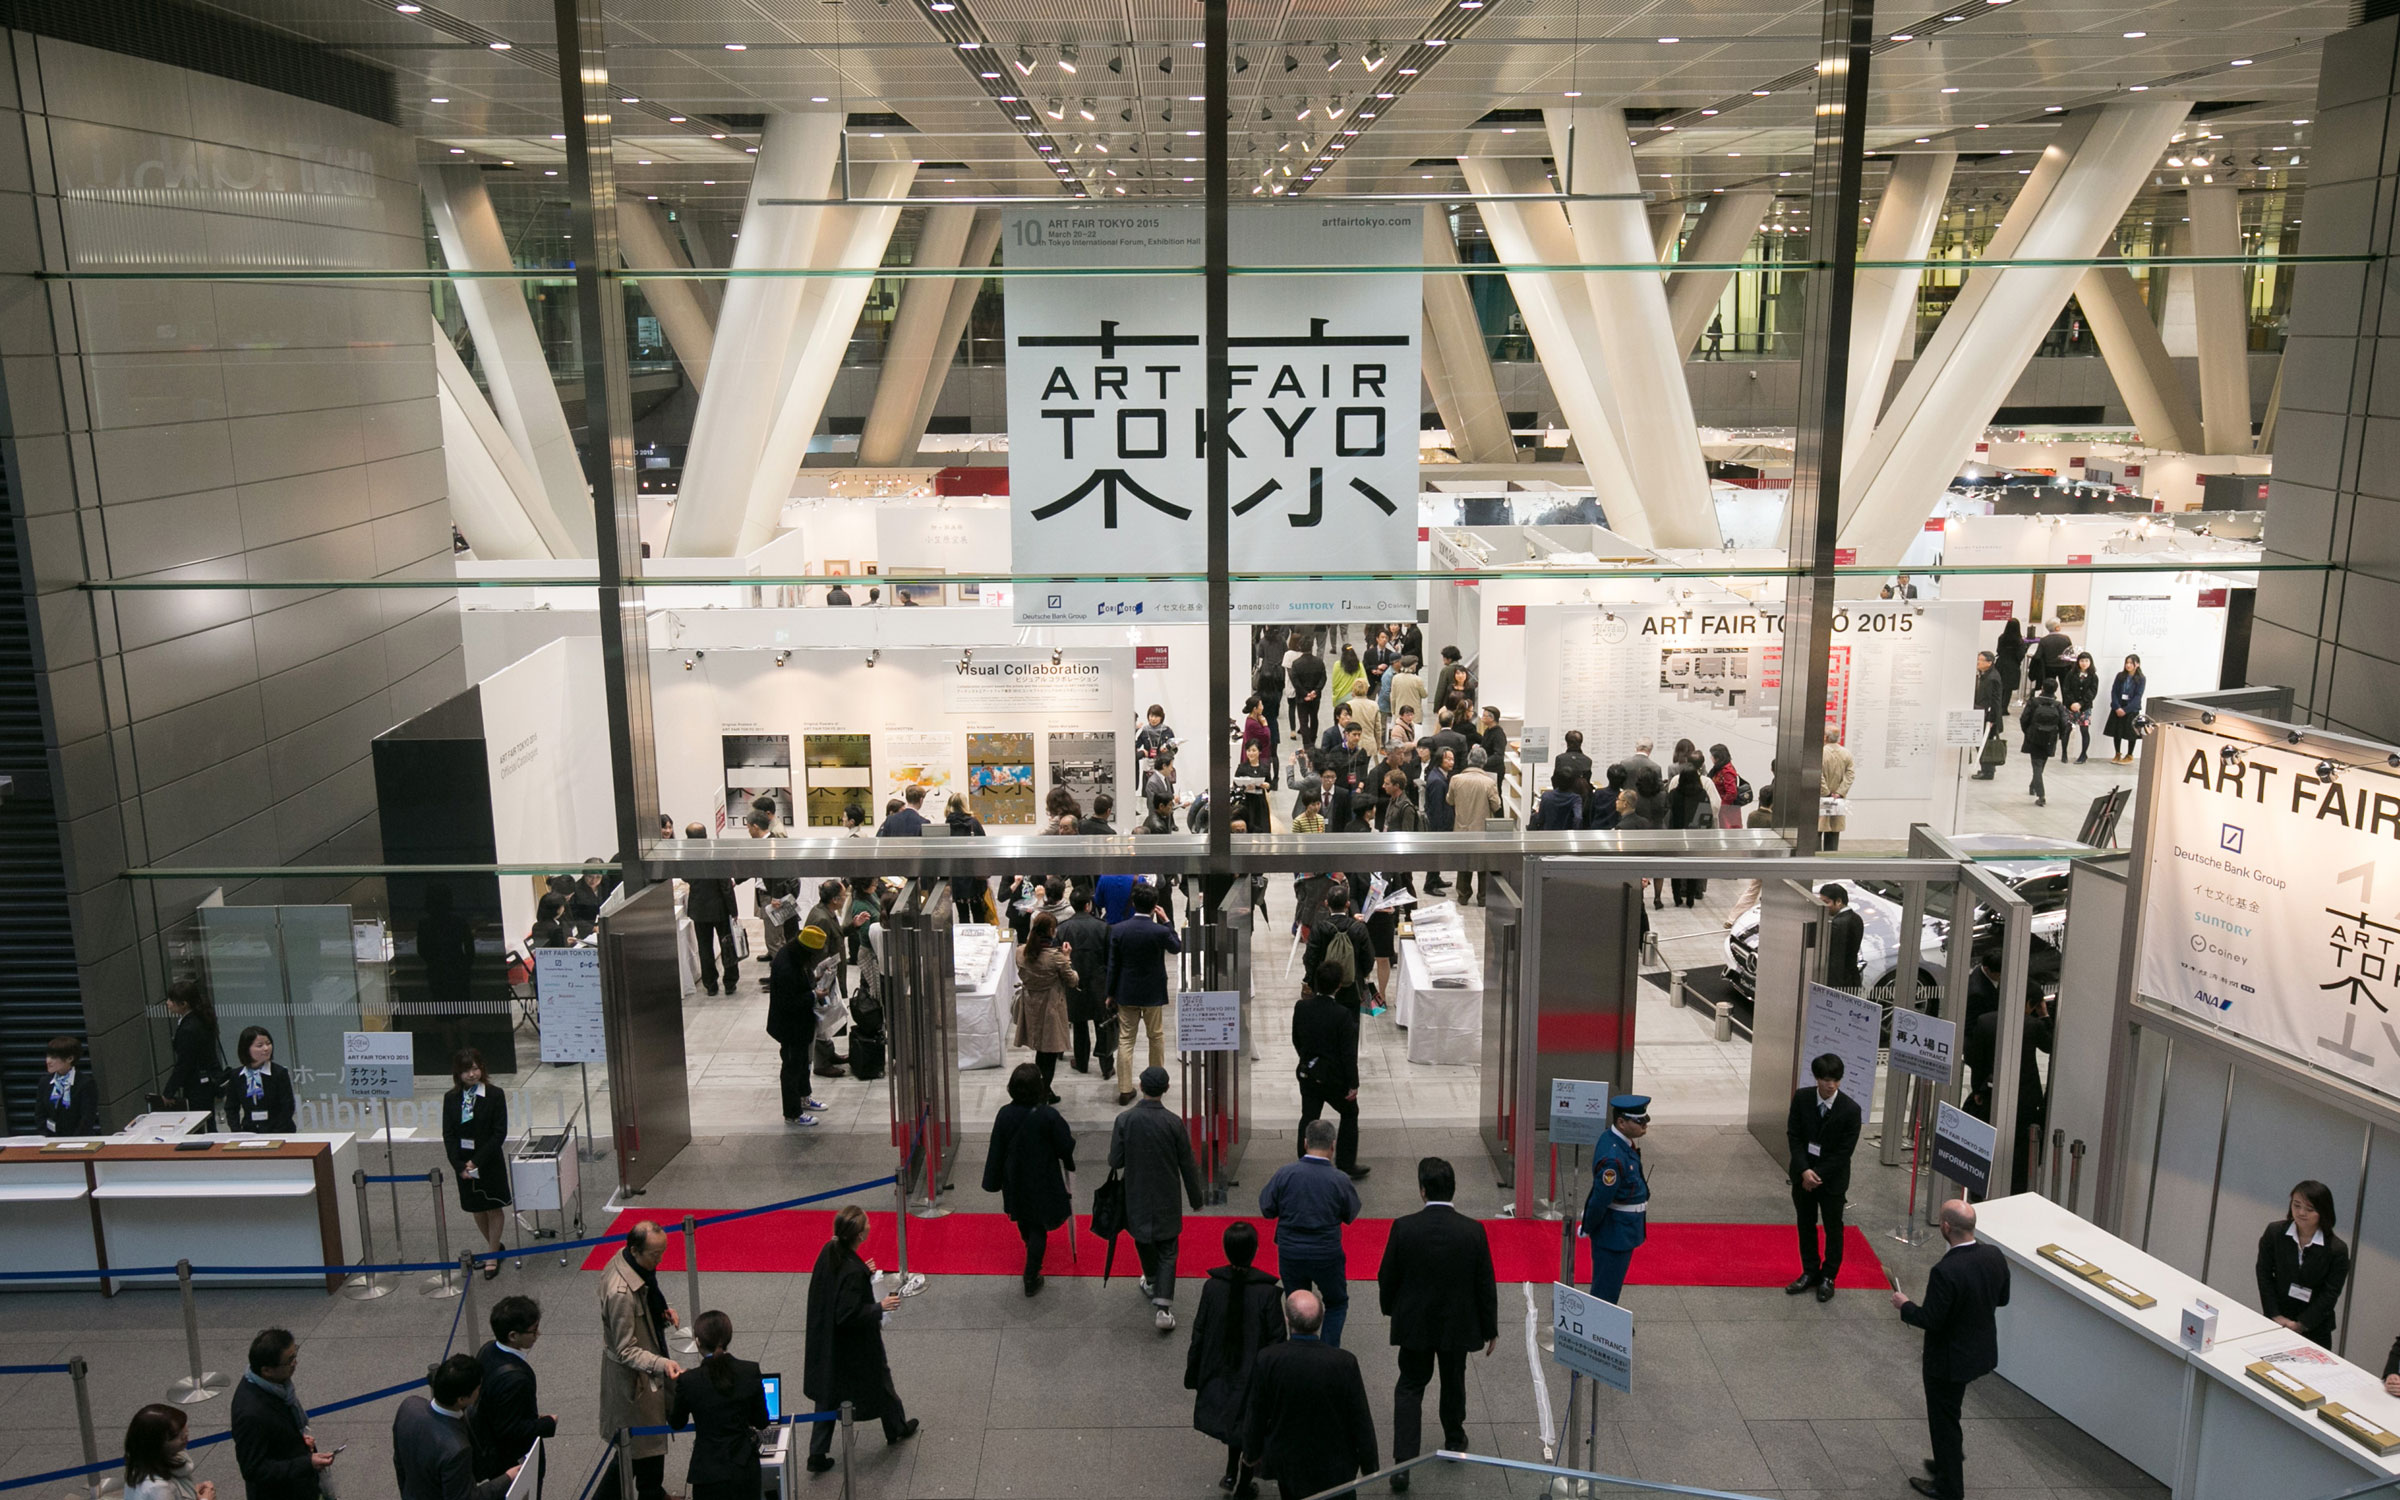 11 things to see and do around Art Fair Tokyo